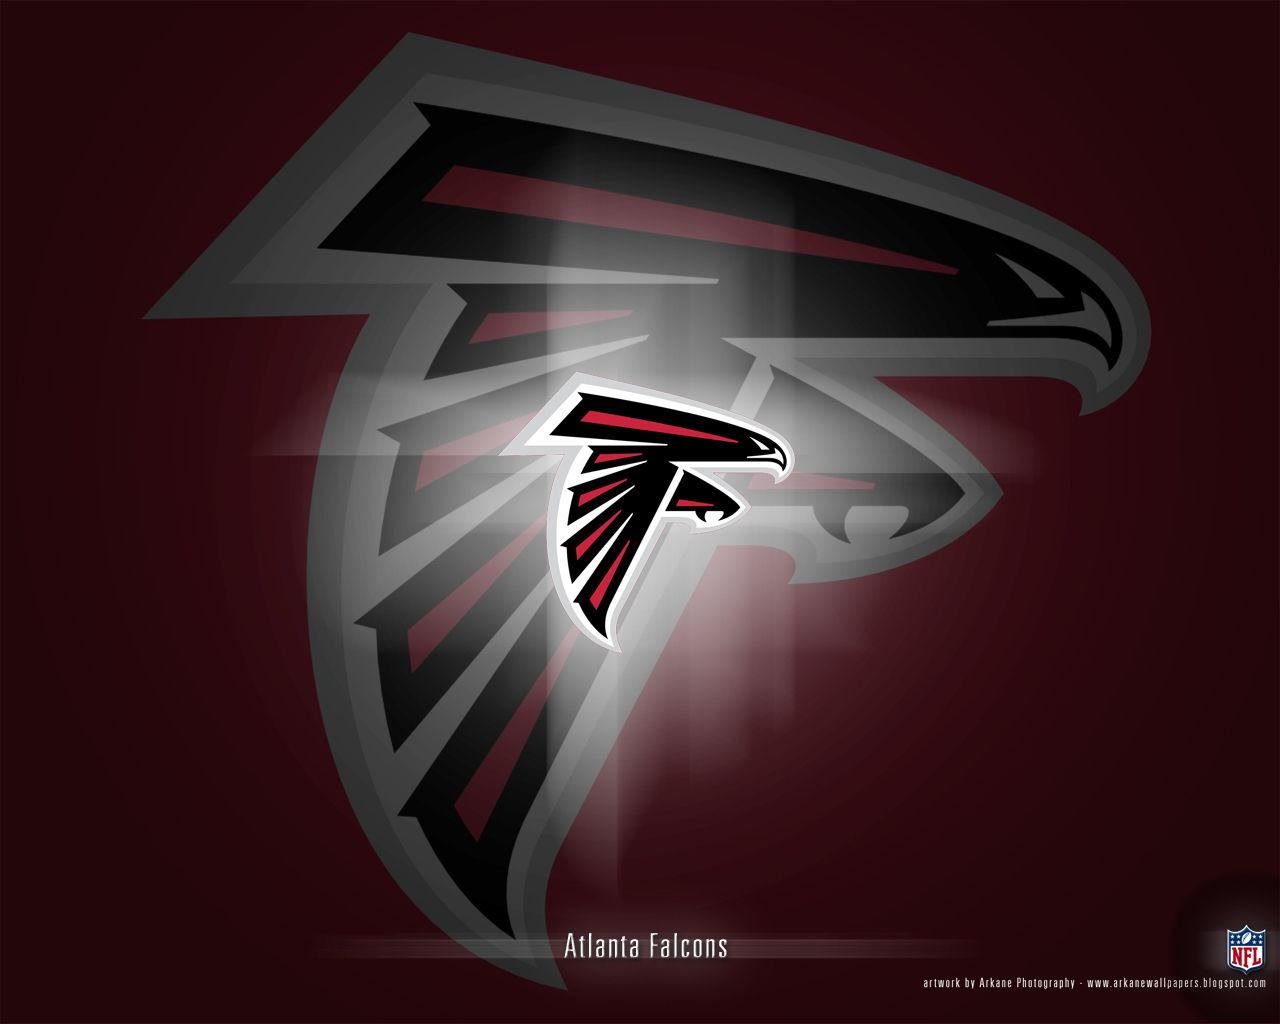 Images Of Atl Falcons Atlanta Falcons Atlanta Falcons Wallpaper 9173279 Fanpop Atlanta Falcons Wallpaper Atlanta Falcons Art Atlanta Falcons Football